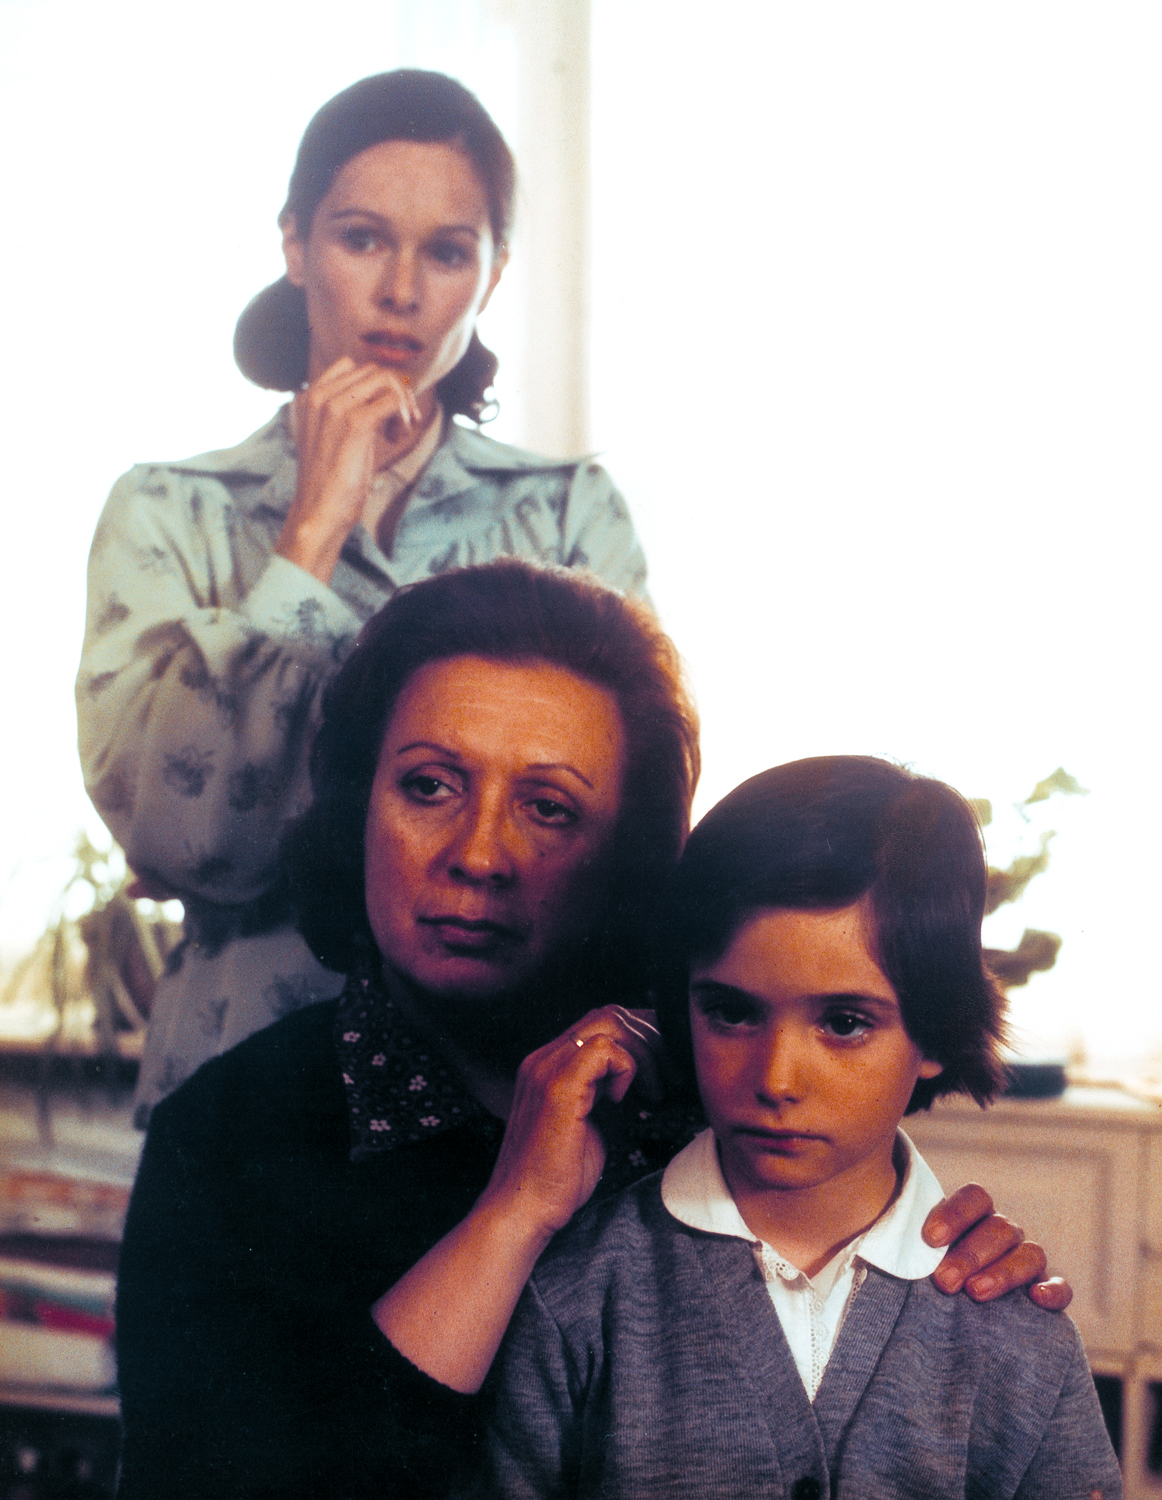 Geraldine Chaplin, Florinda Chico, and Ana Torrent in Cría cuervos (1976)